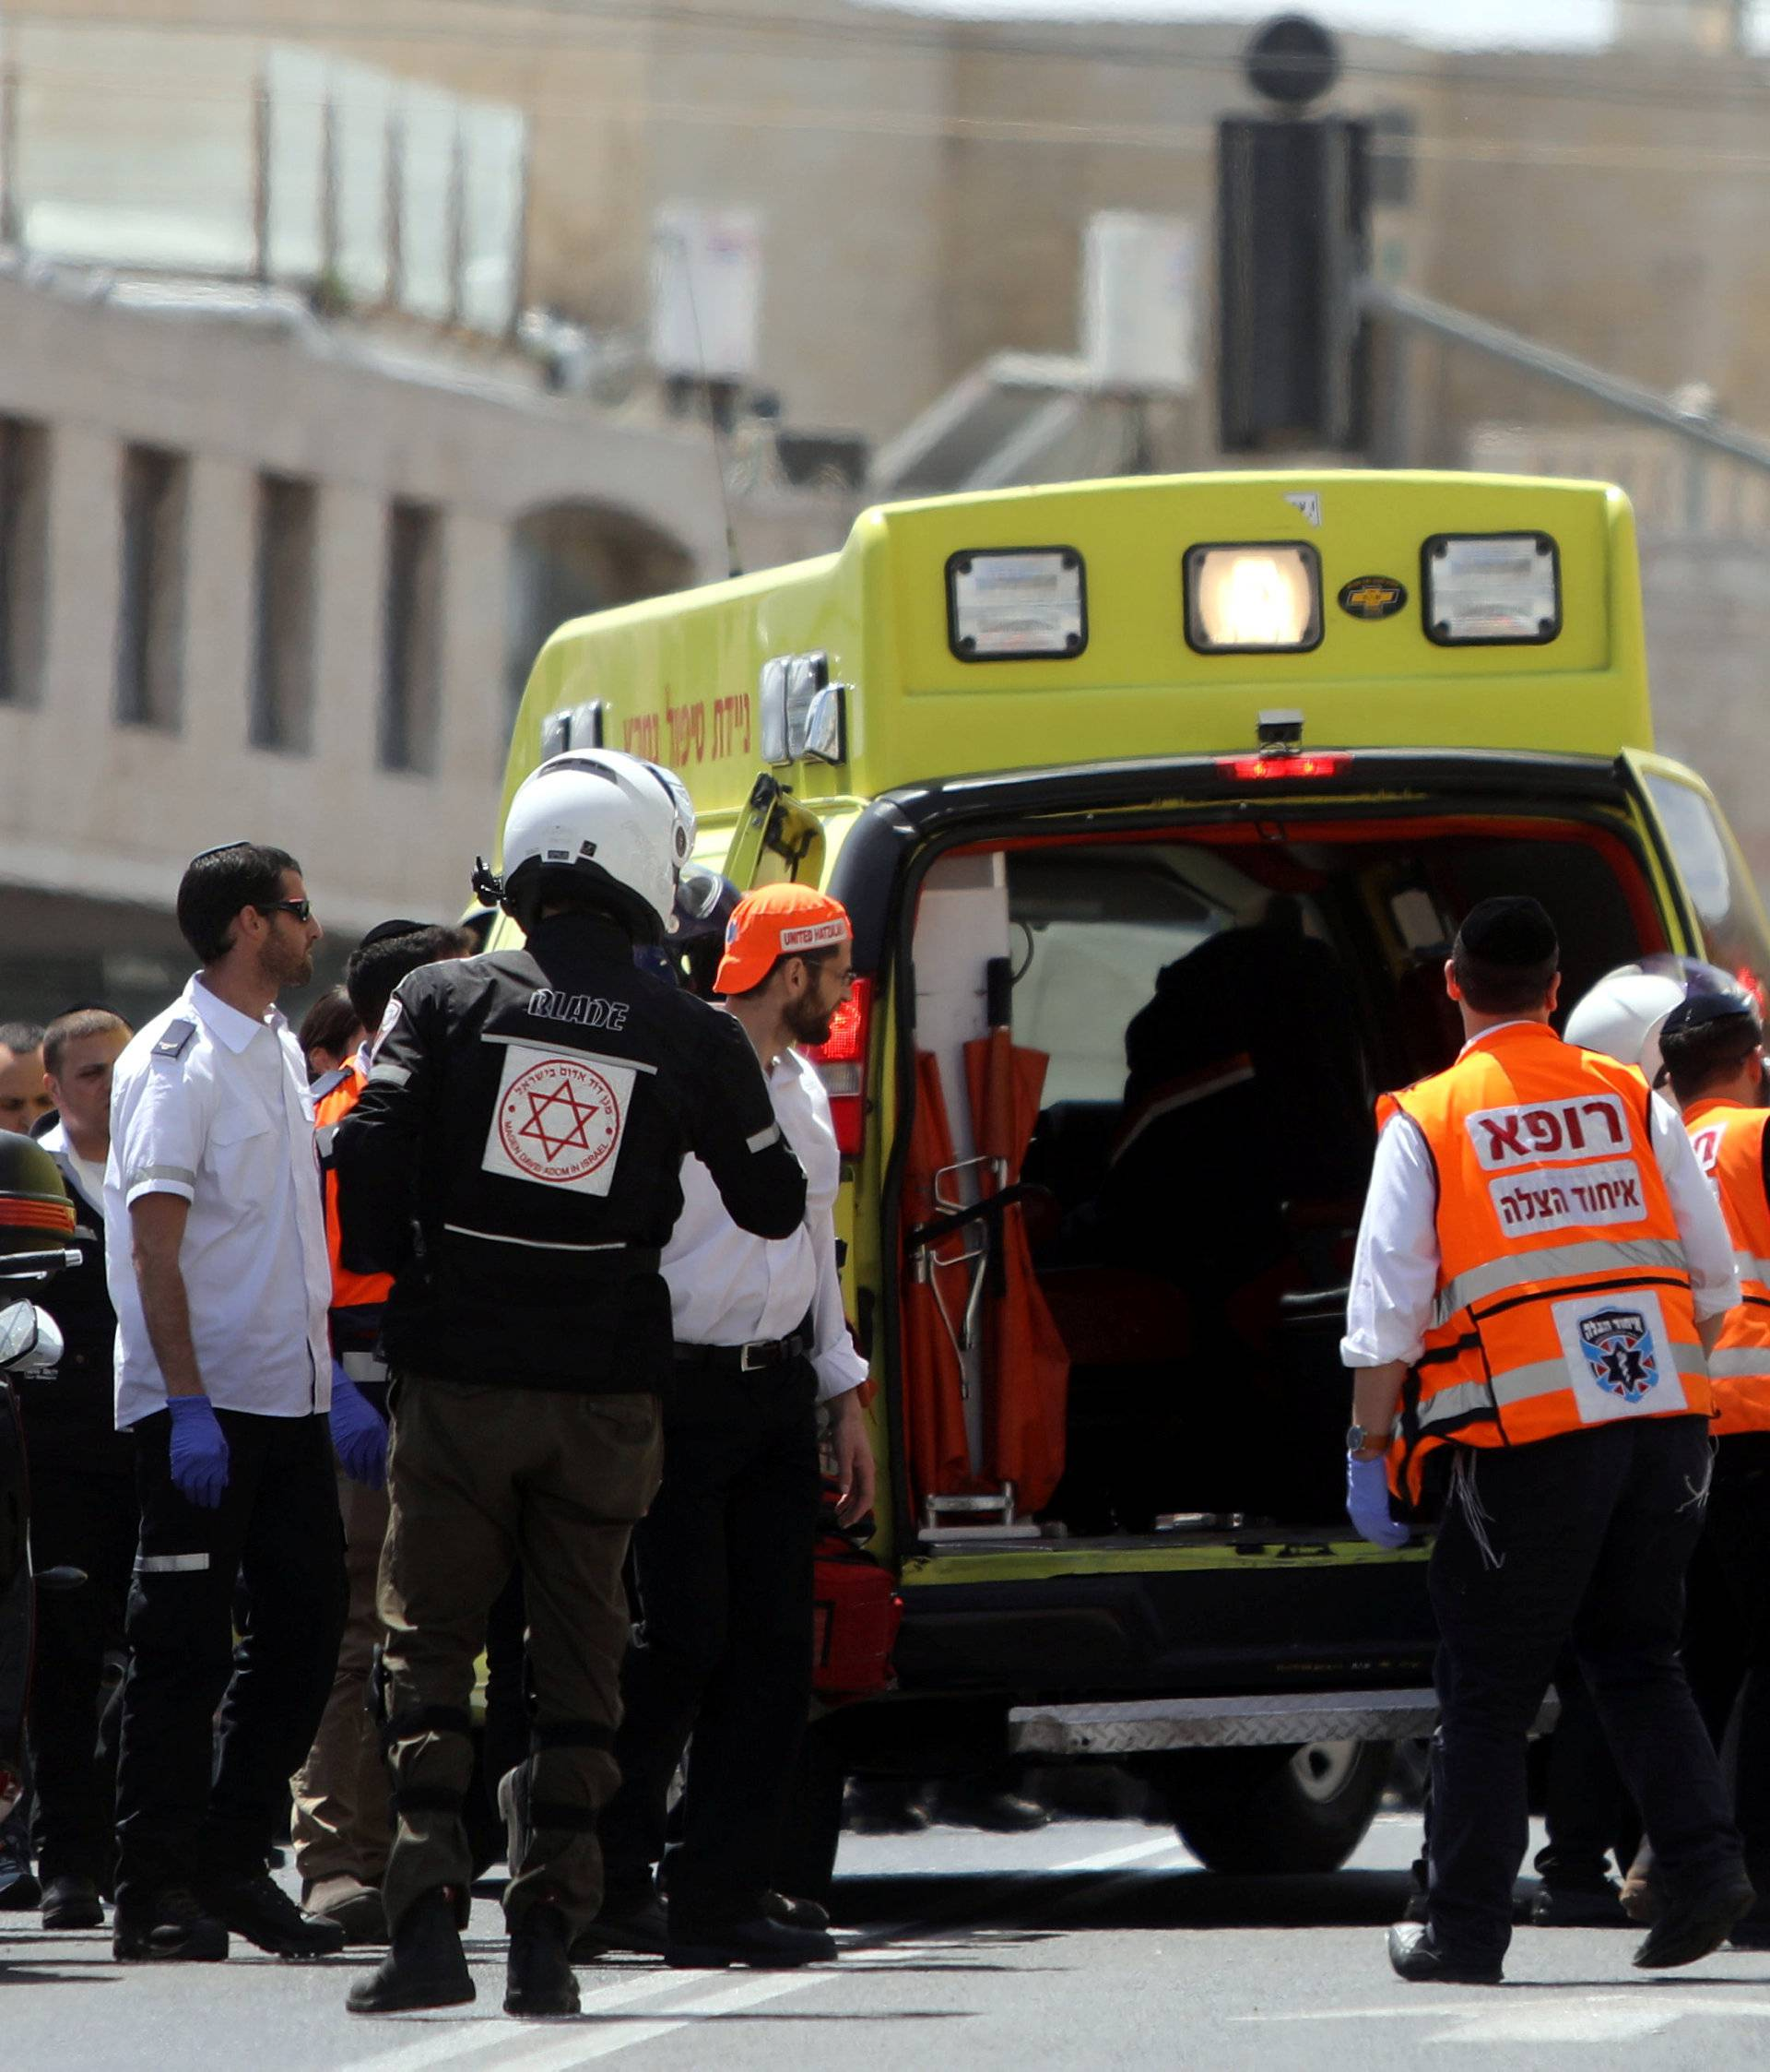 Israeli medics evacuate an injured person following a stabbing attack just outside Jerusalem's Old City, according to Israeli police